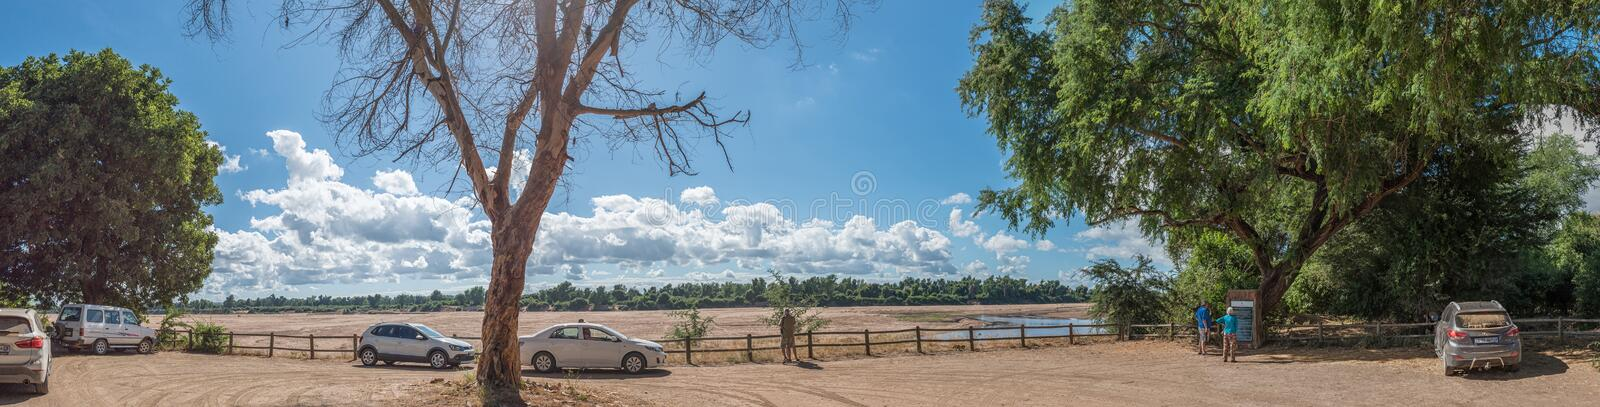 Crooks Corner with Zimbabwe visible accross the Limpopo River stock photography